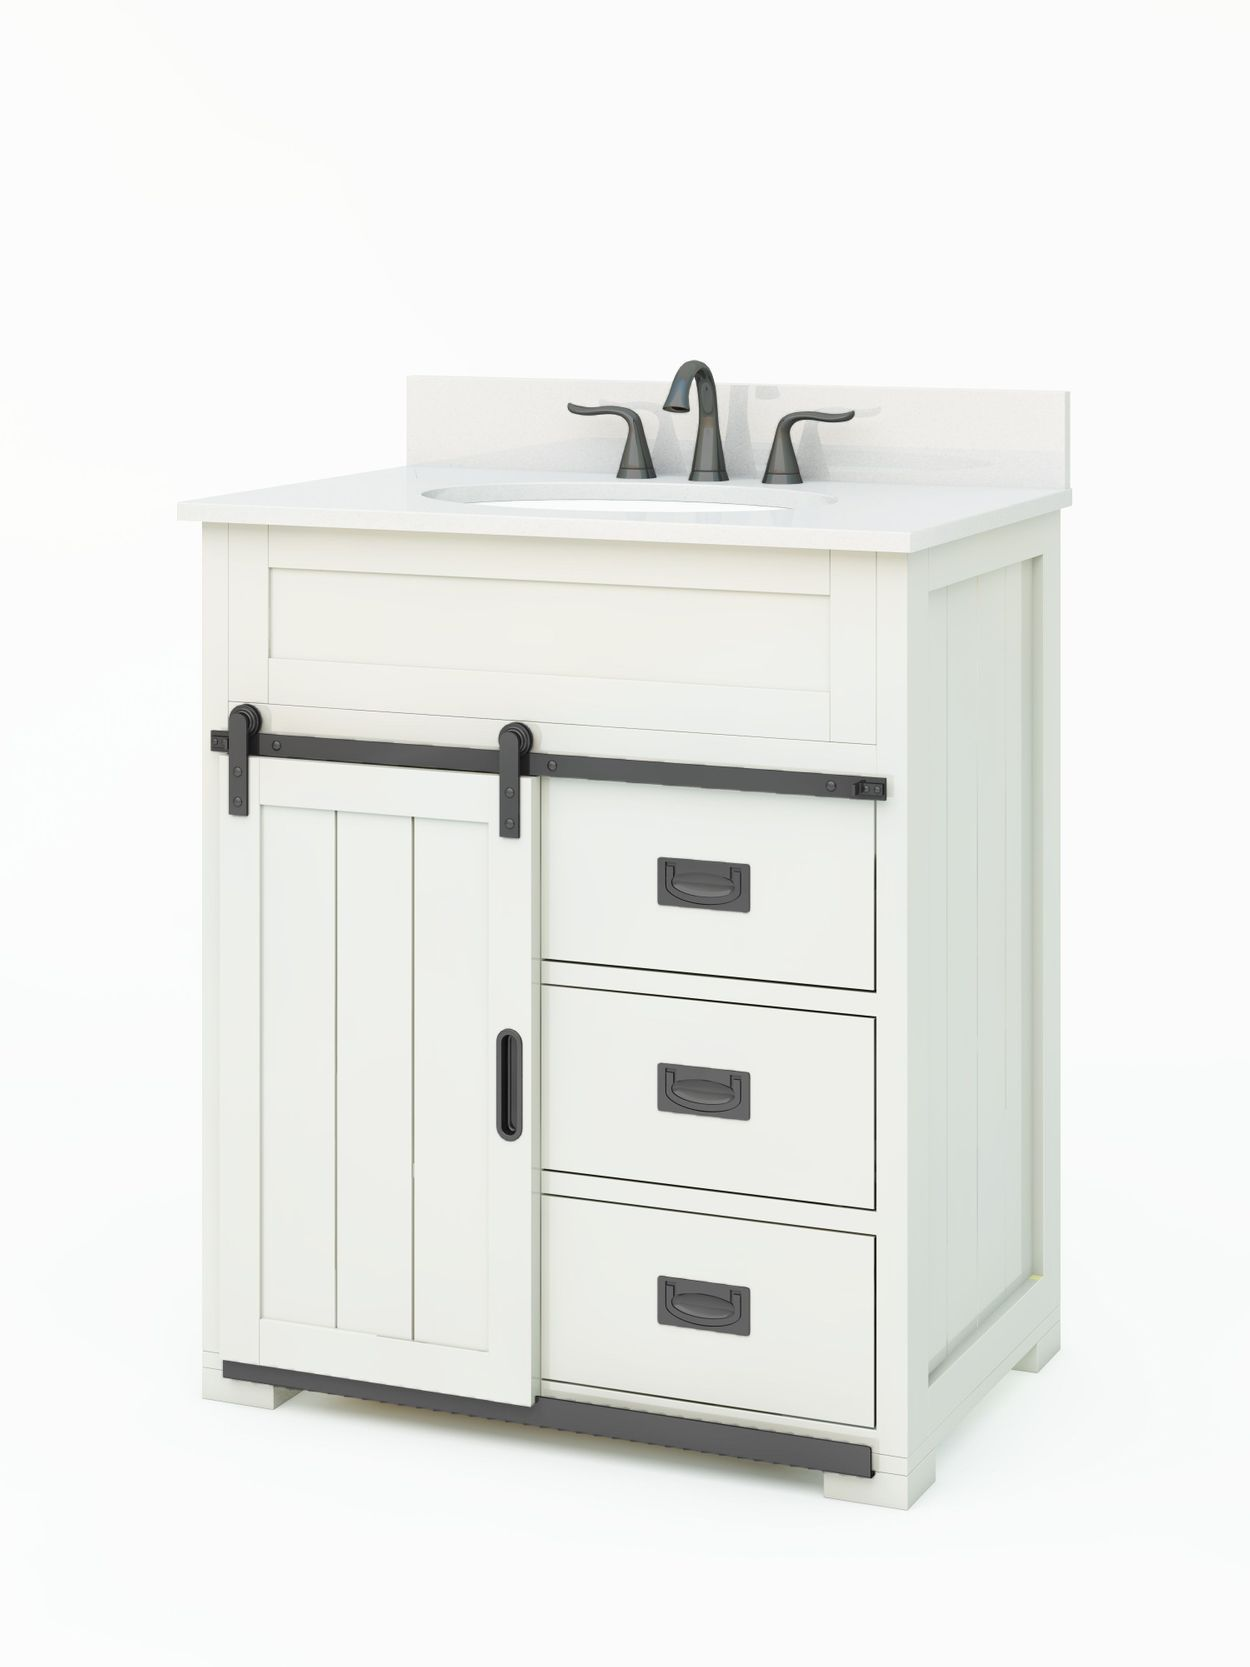 Style Selections Morriston 30 In White Single Sink Bathroom Vanity With White Engineered Stone Top Lowes Com Bathroom Sink Vanity Bathroom Vanity Single Sink Bathroom Vanity